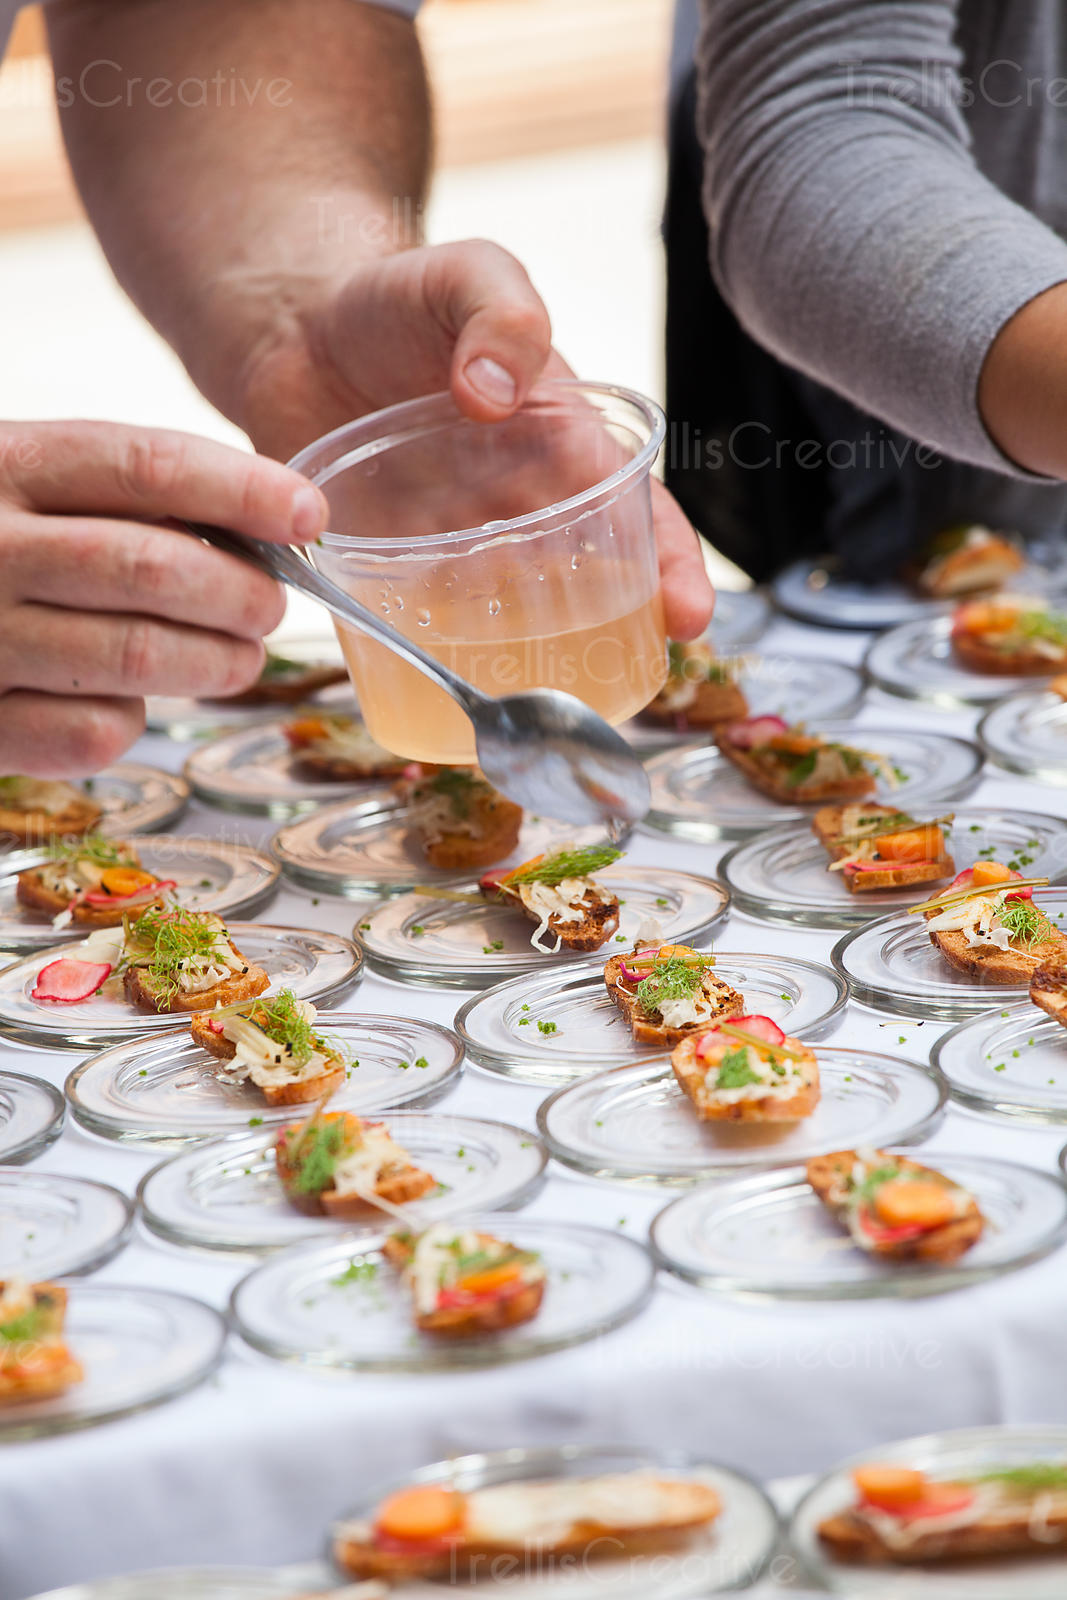 Chef garnishing the crostini bites with a vinegerette